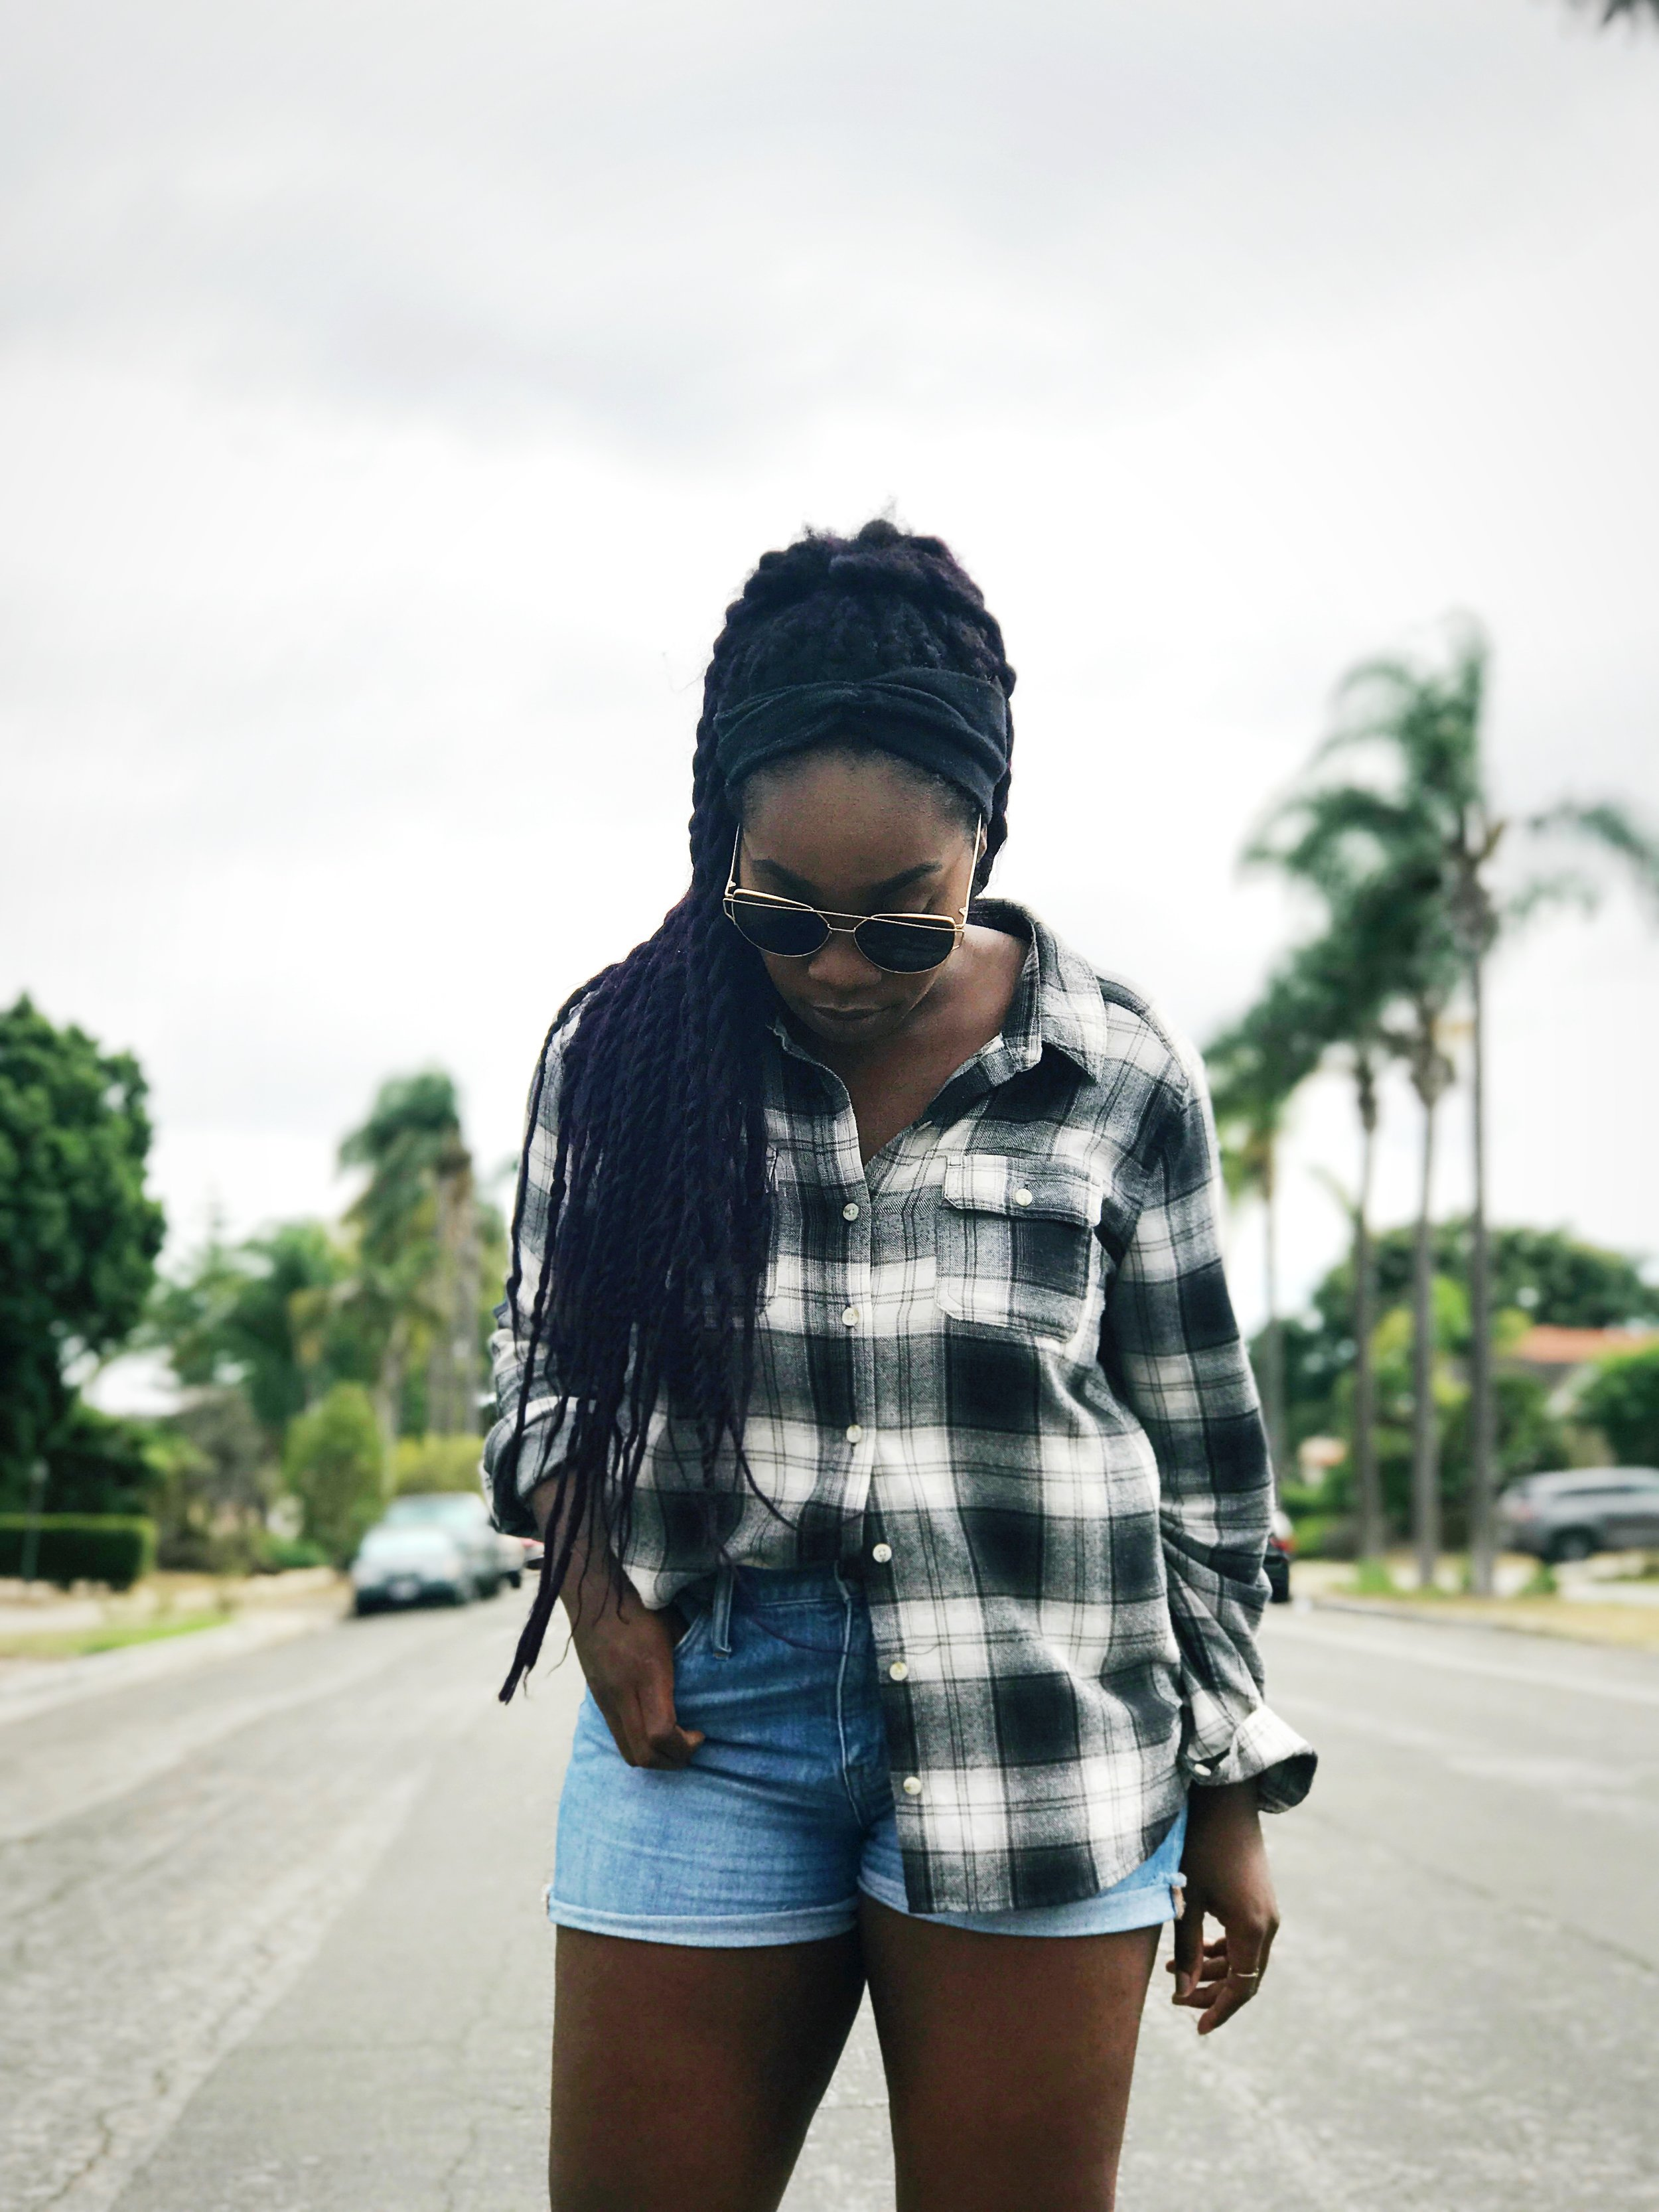 Femi wearing flannel and jean shorts in middle of street.